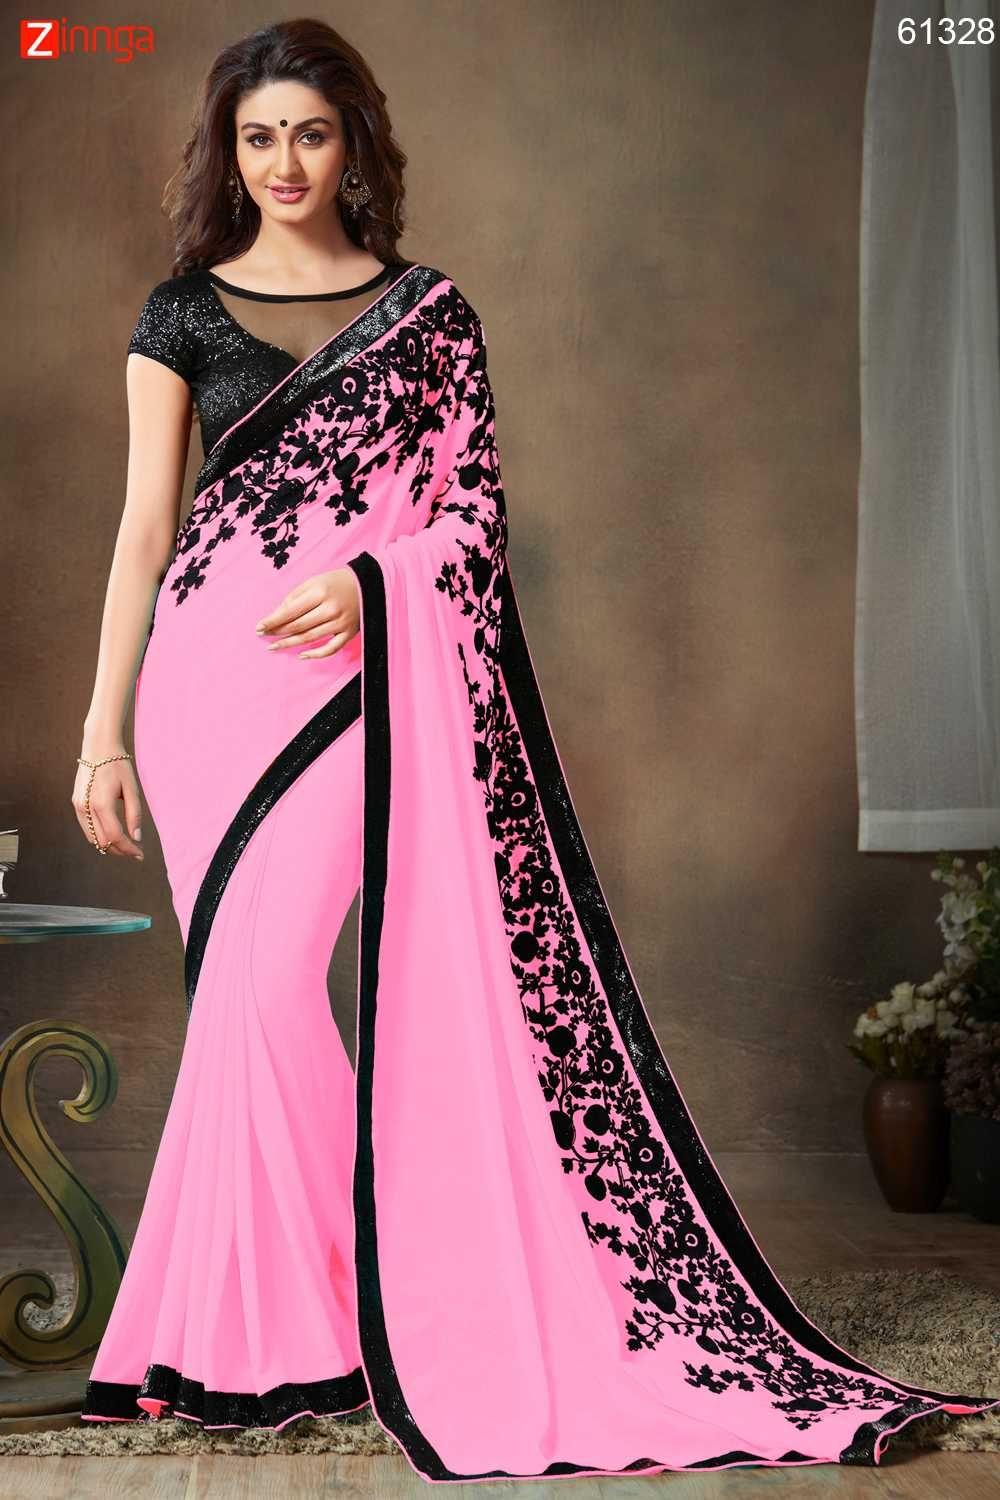 faef4b7c95 Embroidered Pallu Saree in Rose Pink Color Message/call/WhatsApp at  +91-9246261661 or Visit www.zinnga.com